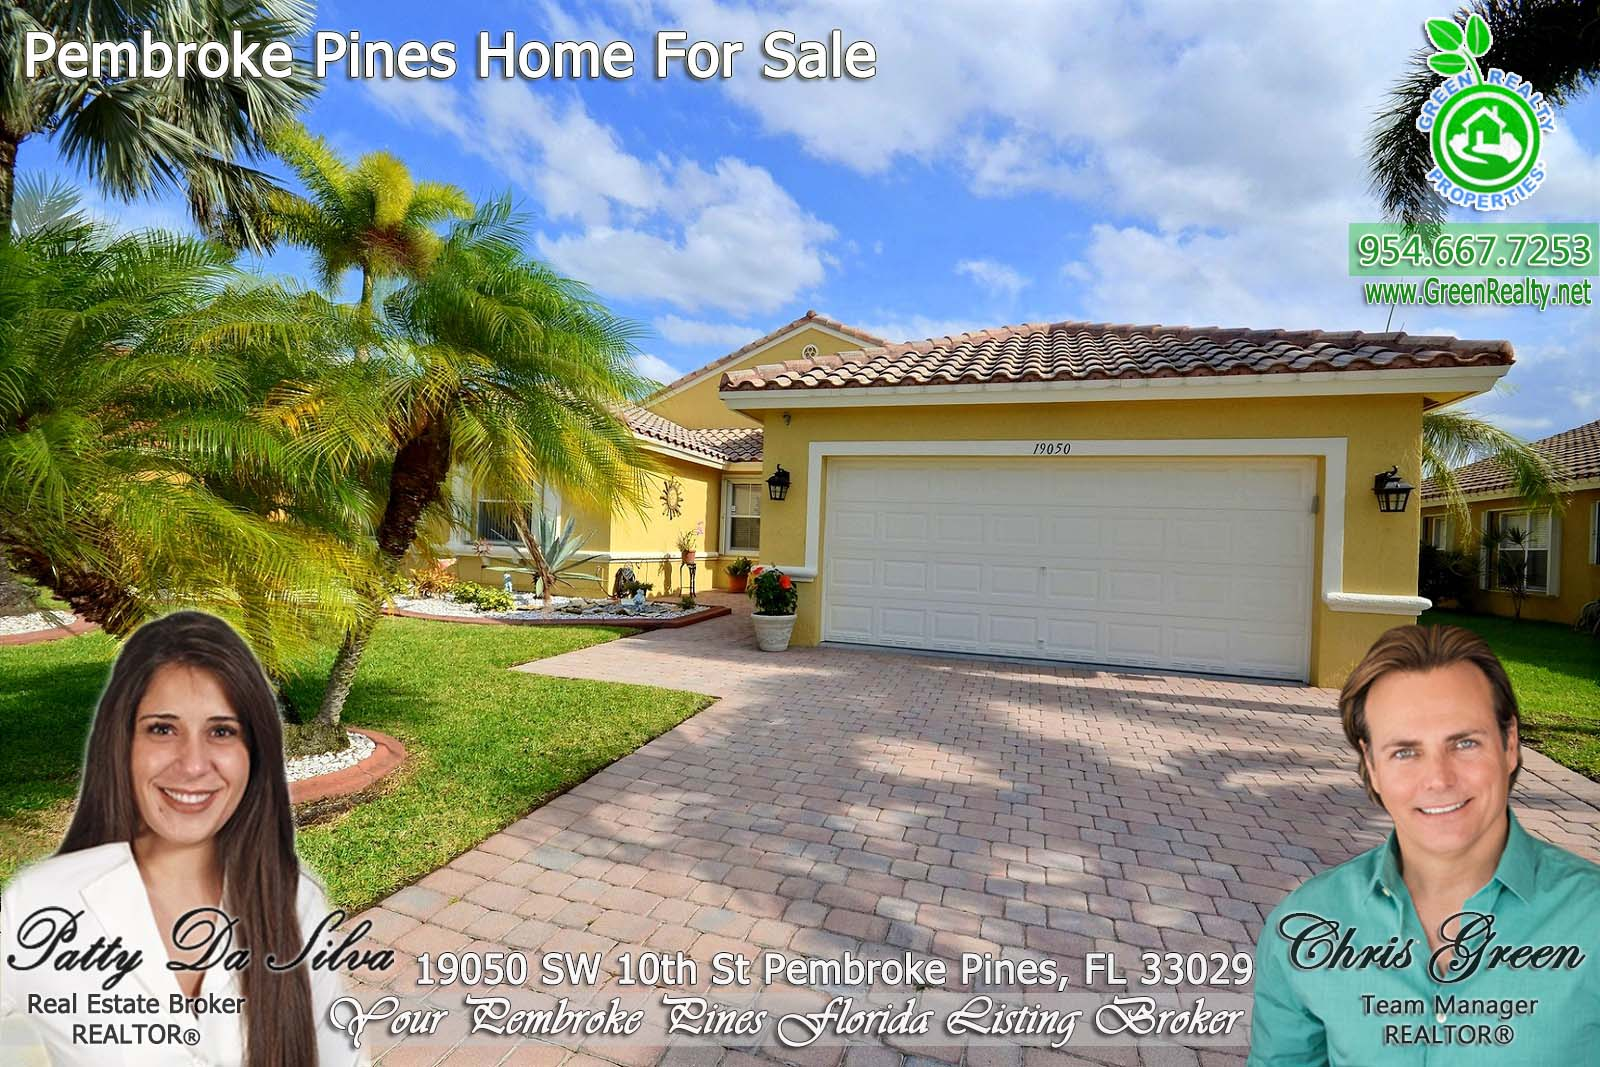 2 Encantada Homes For Sale on Pembroke Pines (1)